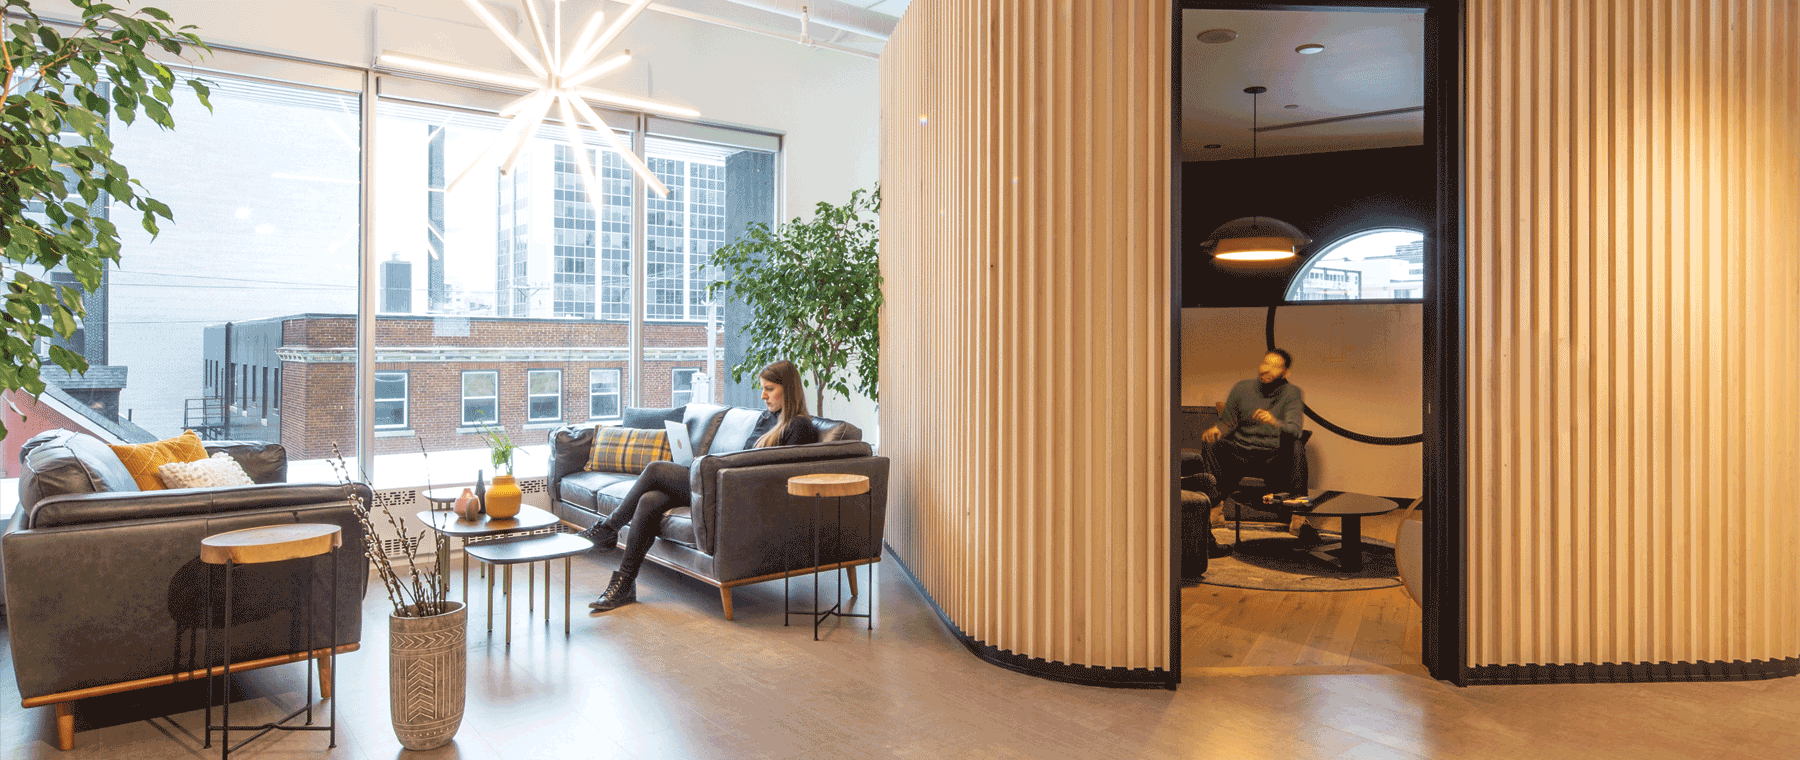 The New Office Space: Architect Andrew Reeves on post-pandemic workspaces